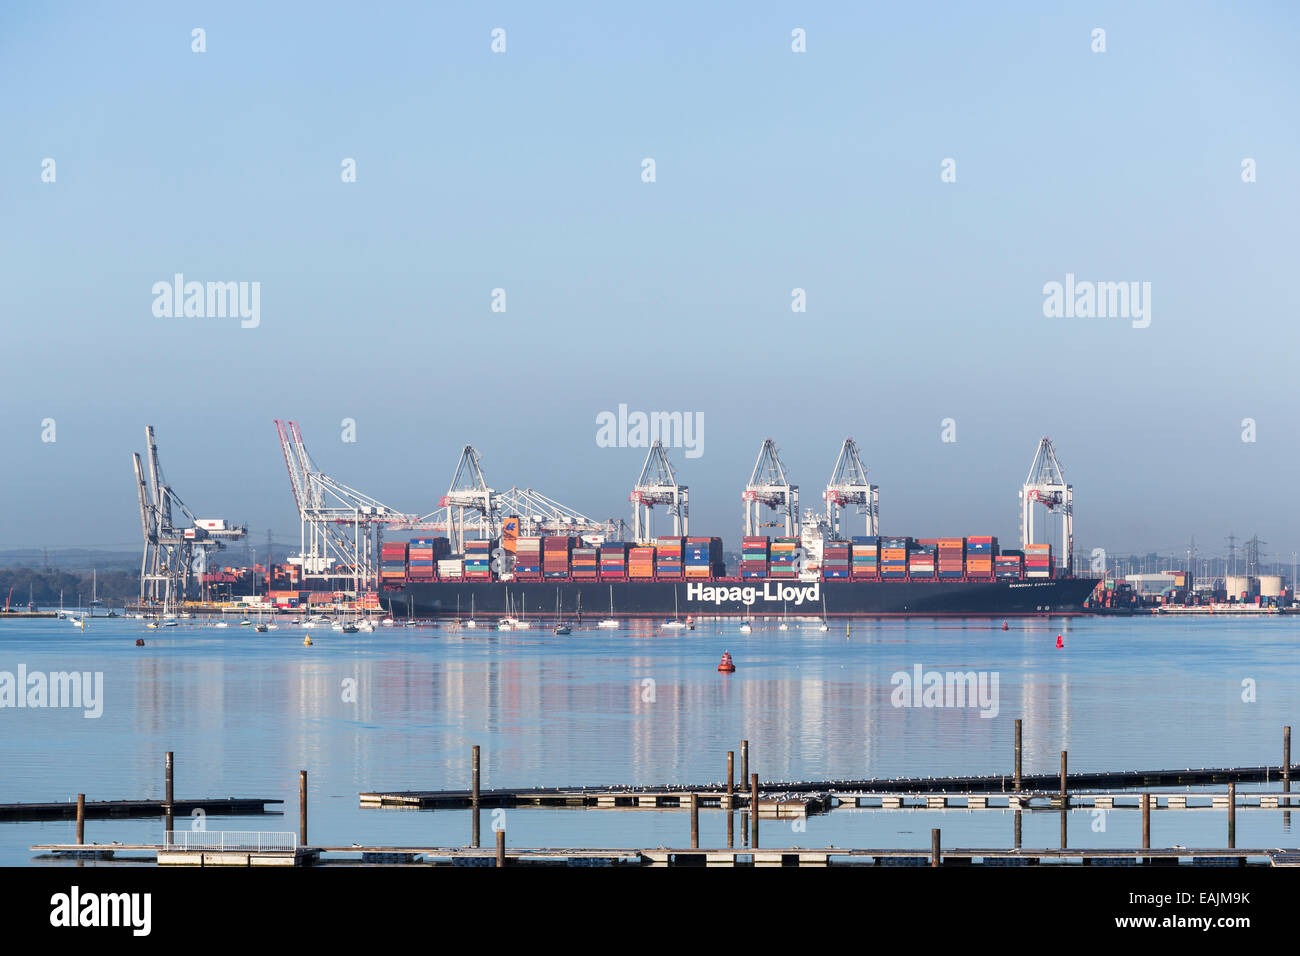 Huge Hapag-Lloyd container ship 'Shanghai Express' berthed at Southampton Docks on the Solent, Hampshire, - Stock Image